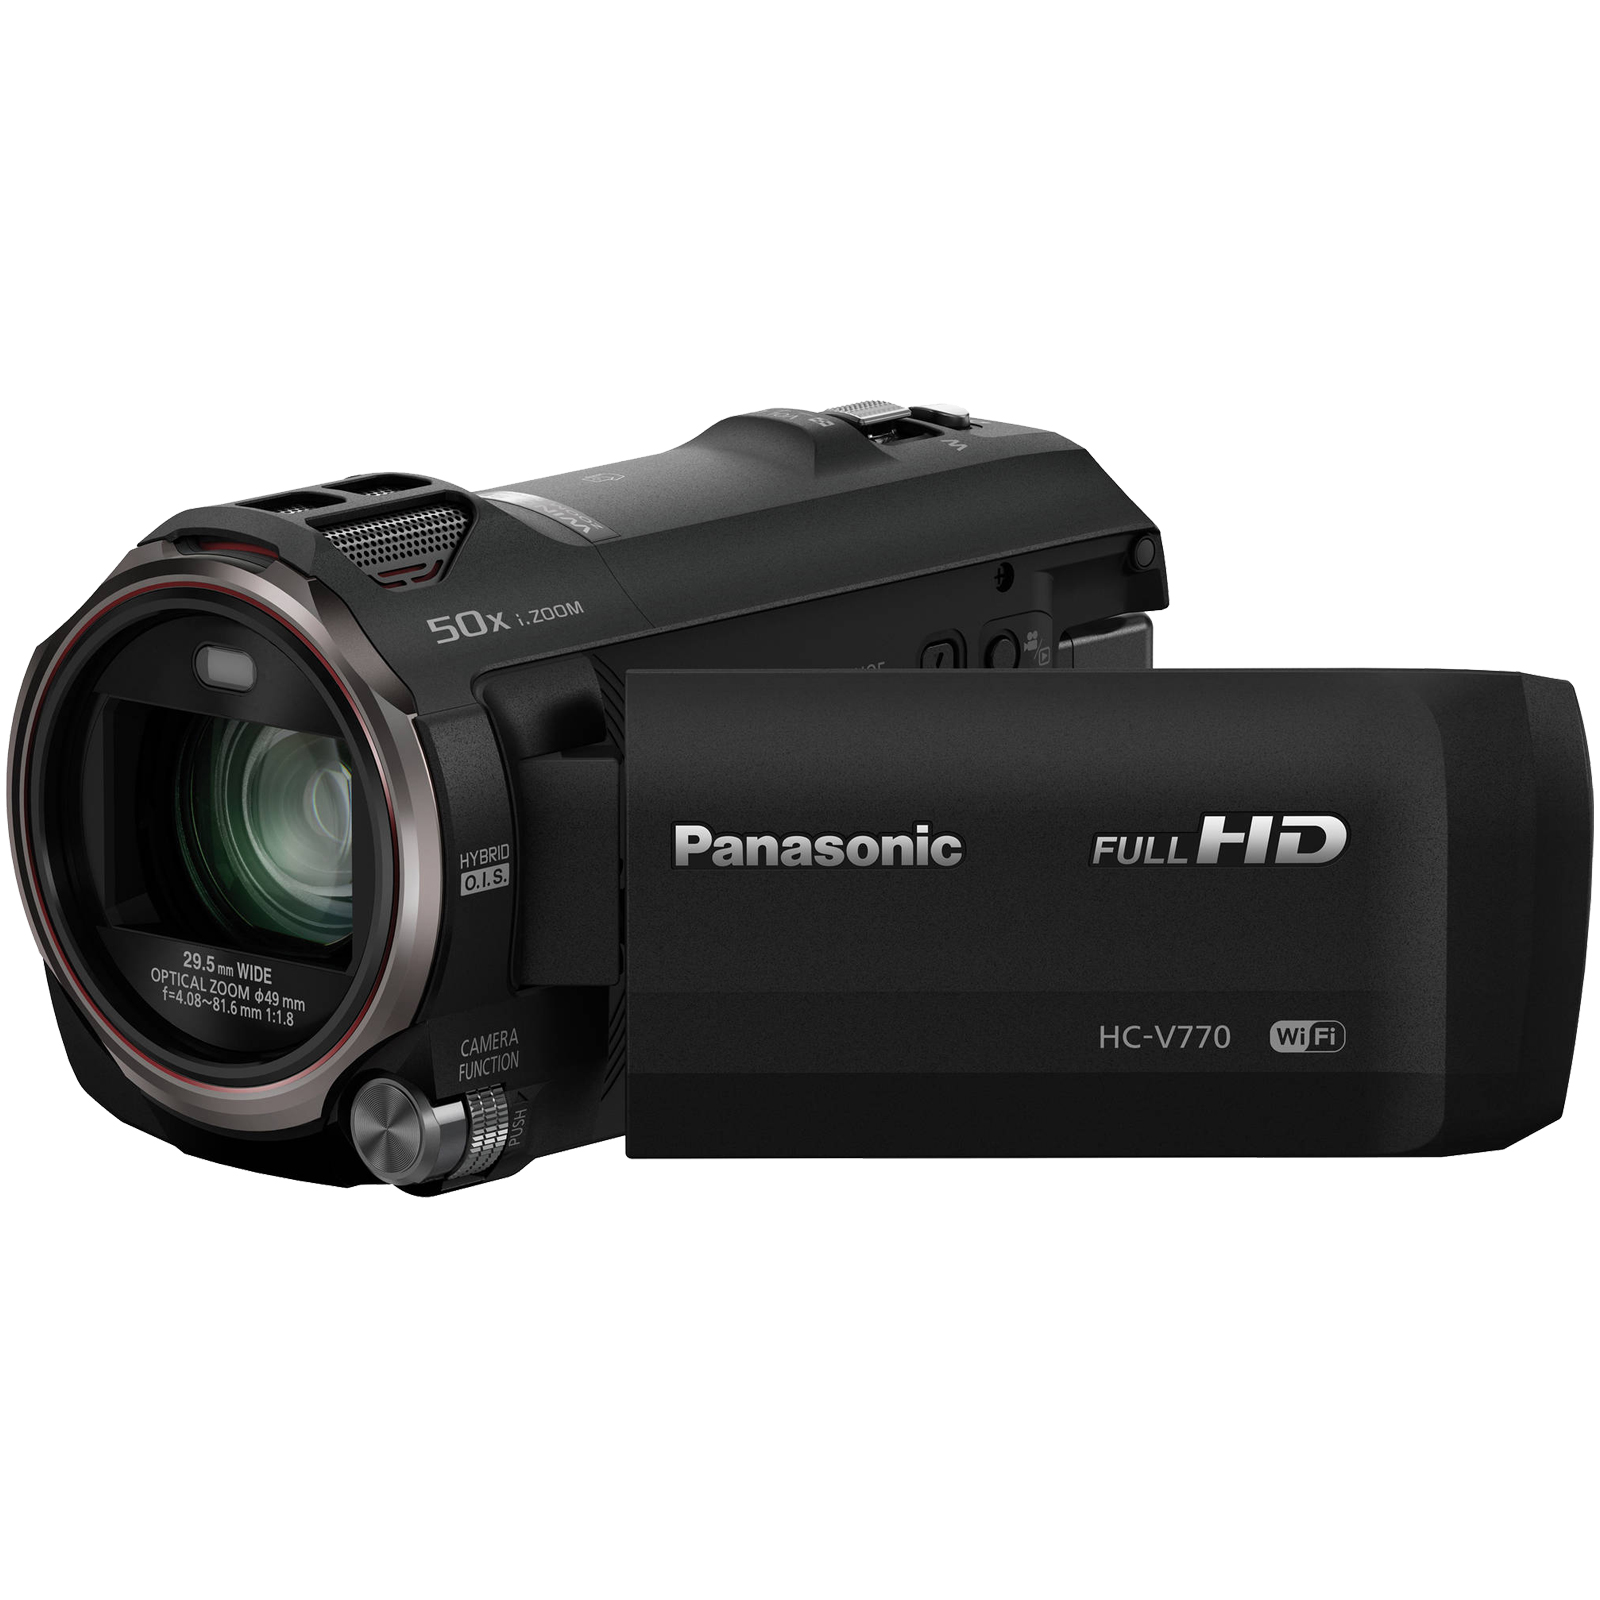 Panasonic HC-V770 Wireless Smartphone Twin Recording Wi-Fi HD Video Camera Camcorder Twin Features: Picture-in Picture Full-motion Recording